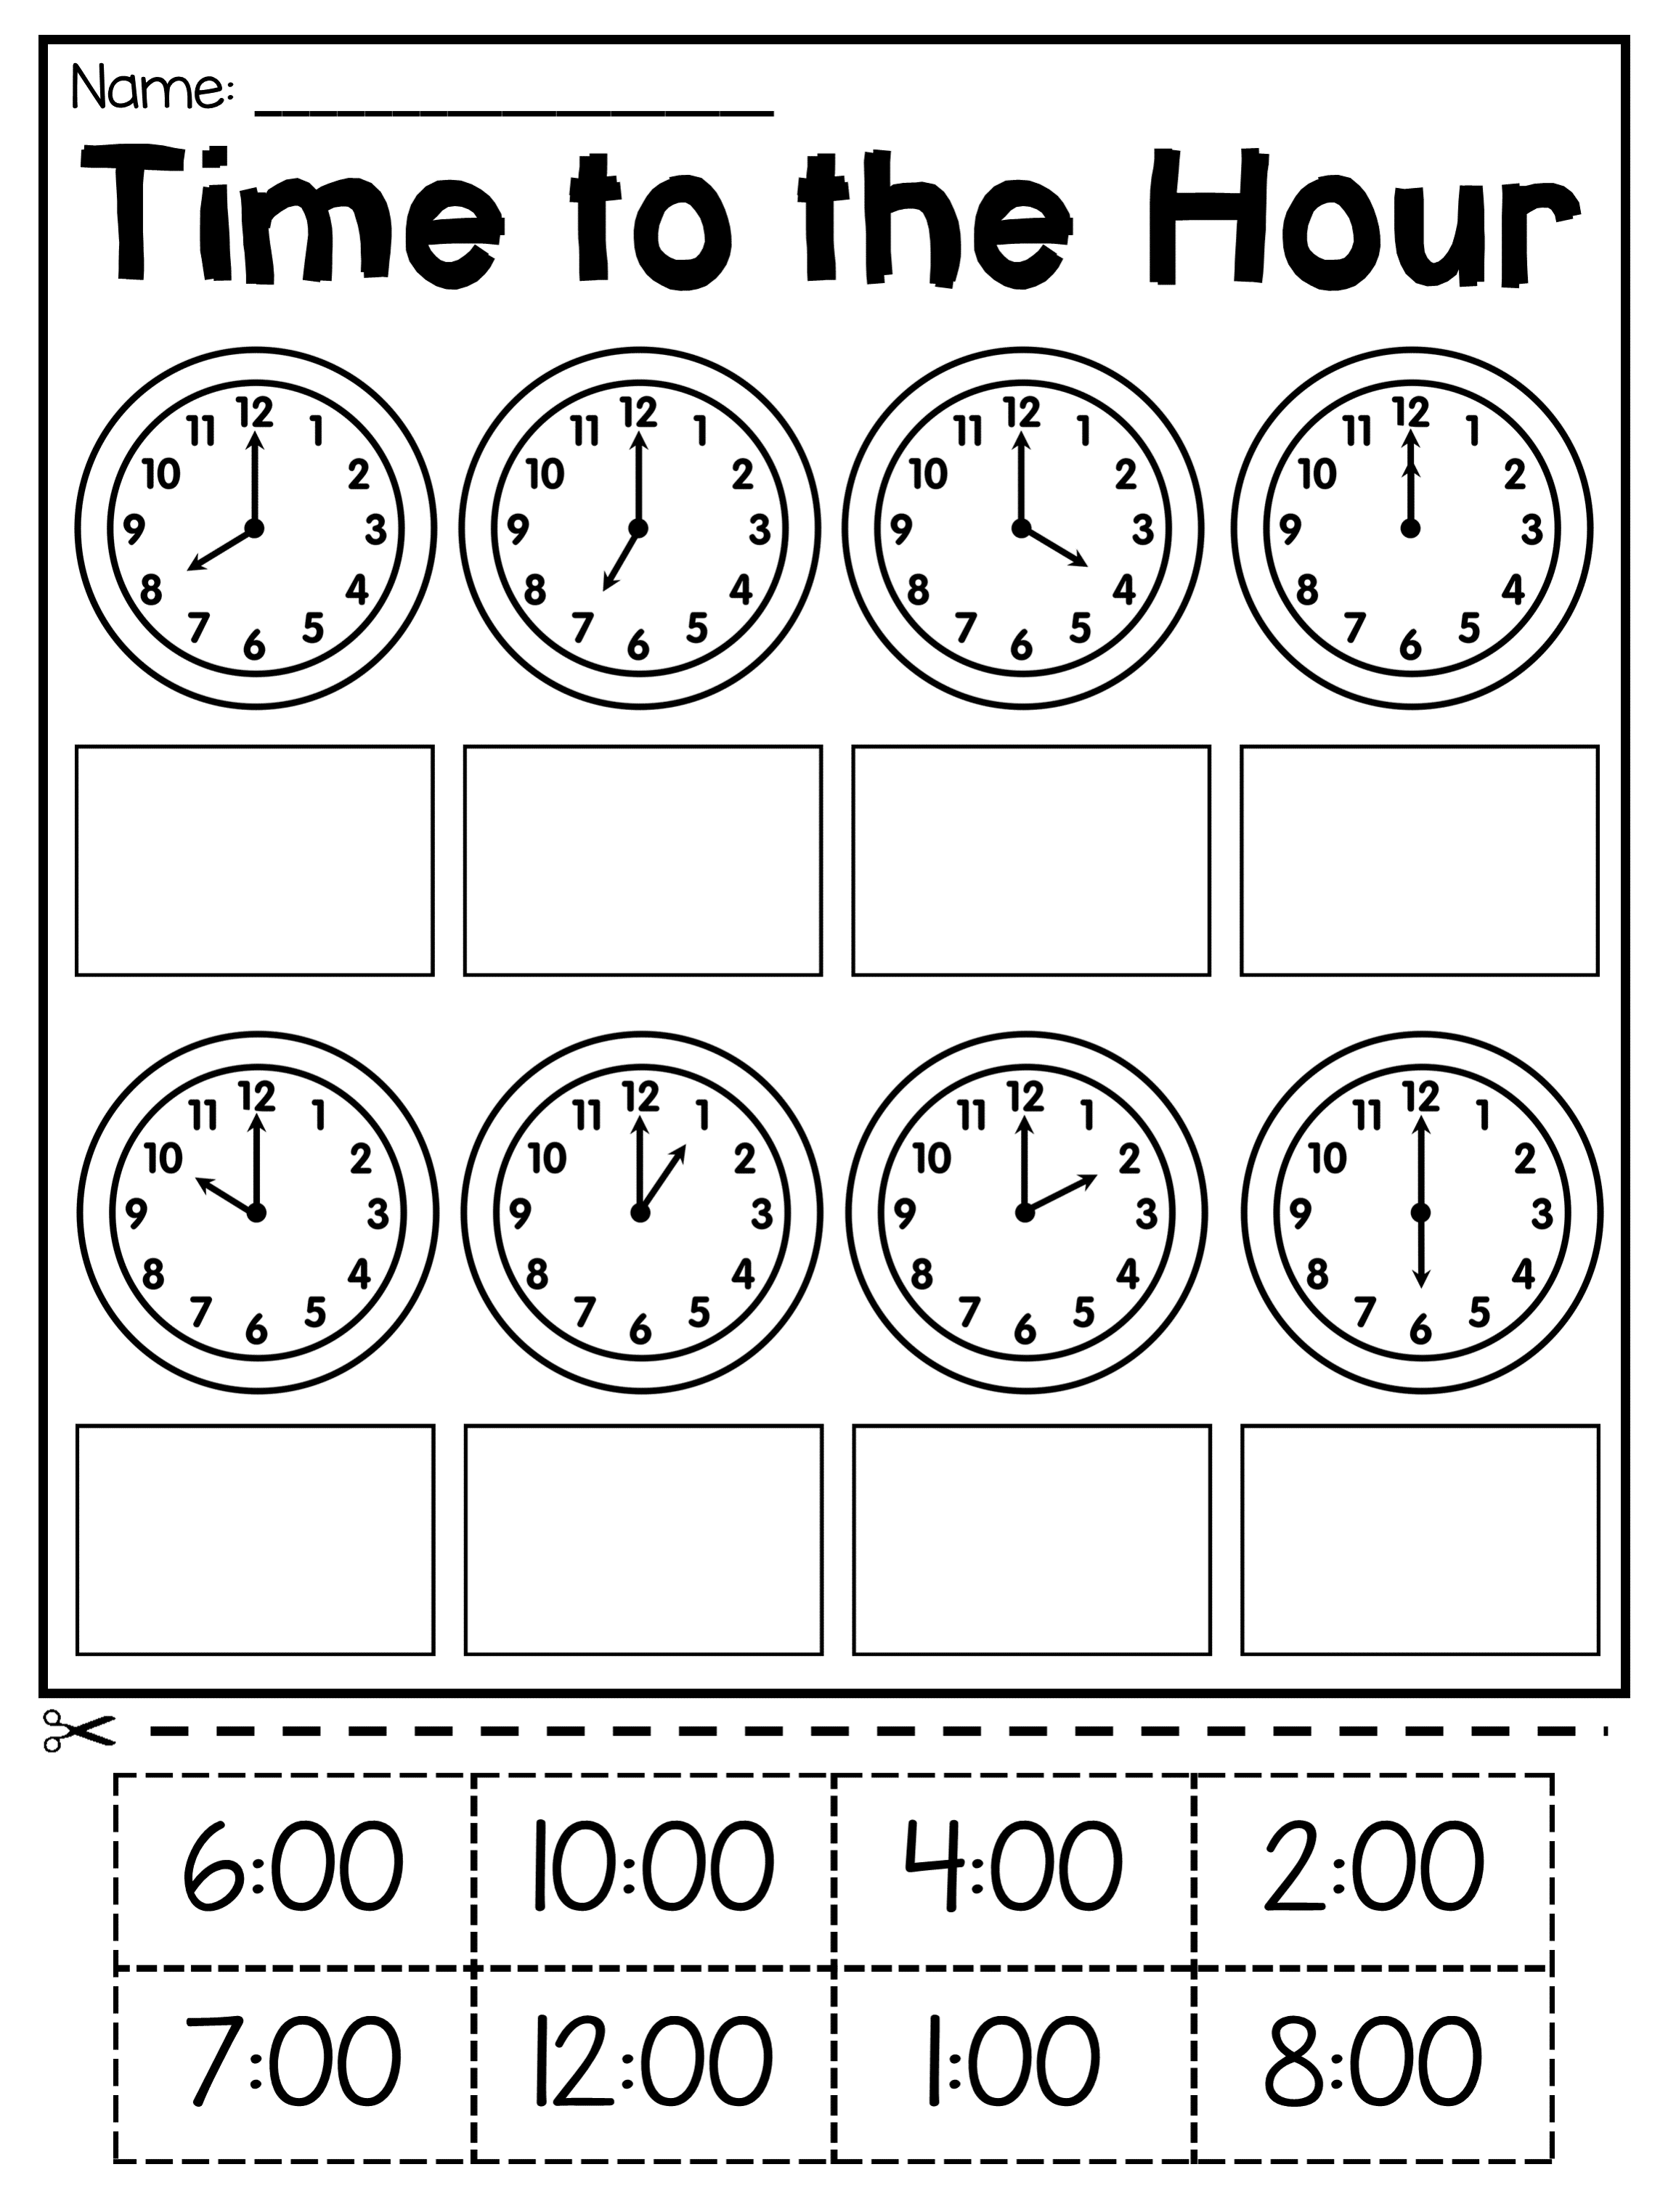 1St Grade Time Worksheets - Math Worksheet for Kids   Kids math worksheets [ 3047 x 2297 Pixel ]